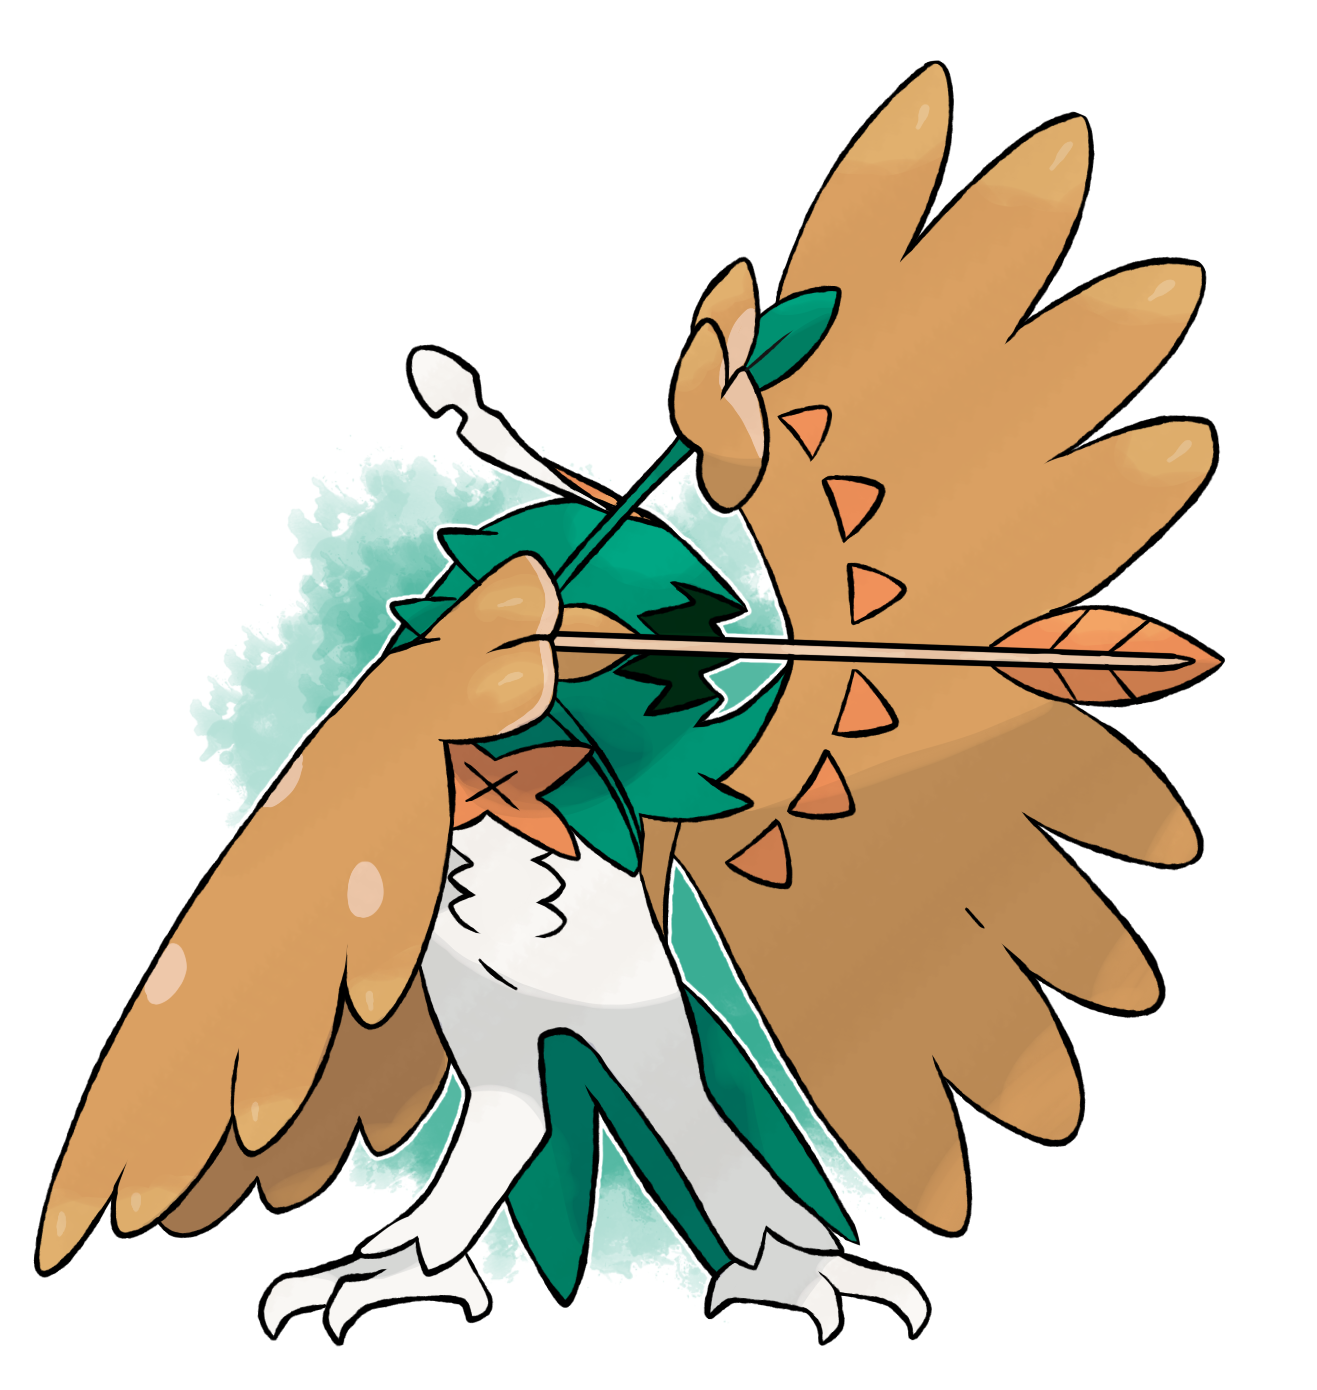 Rowlet Final Evolution By Devildman Pokémon Know Your Meme